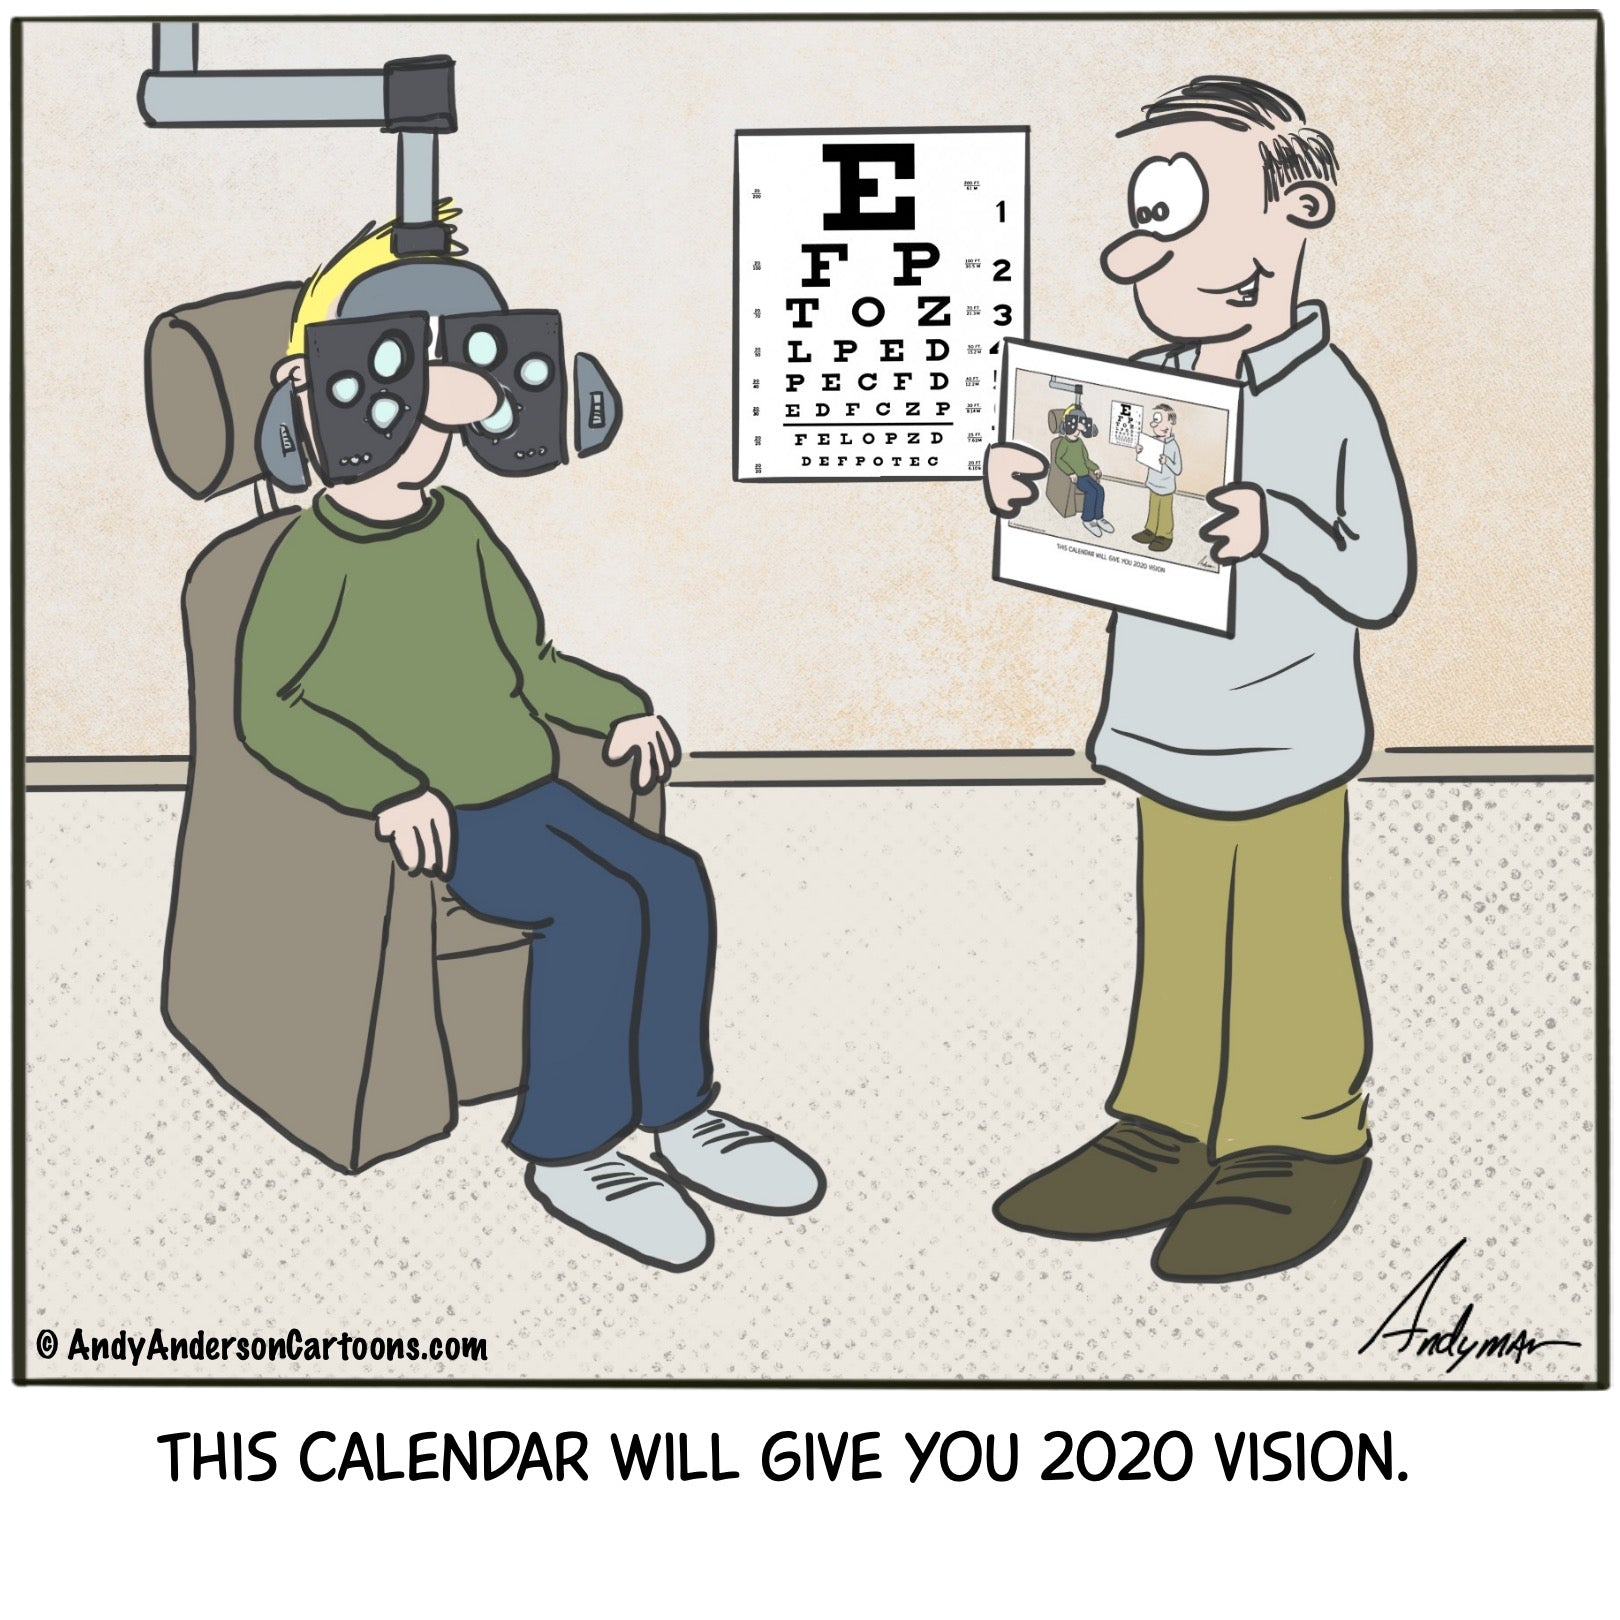 Cartoon about a calendar providing 2020 vision by Andy Anderson